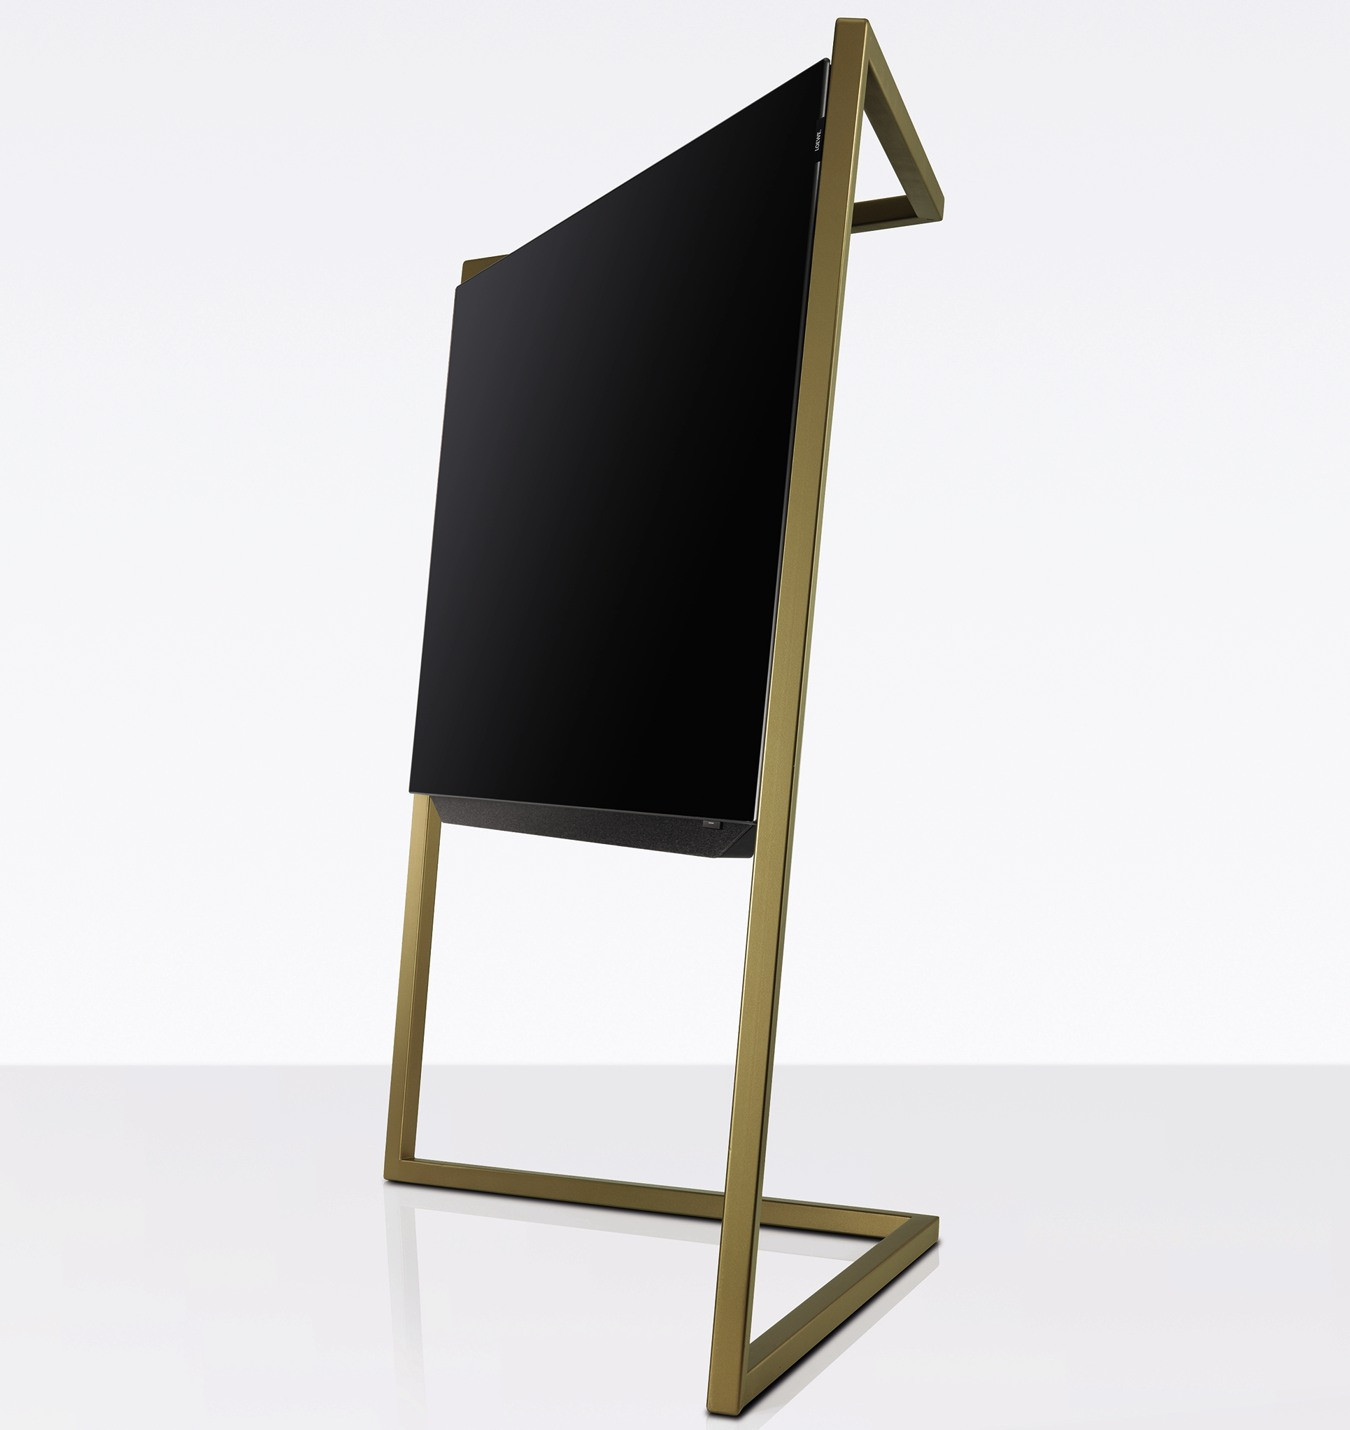 loewe bild mit floorstand amber gold fernseher. Black Bedroom Furniture Sets. Home Design Ideas